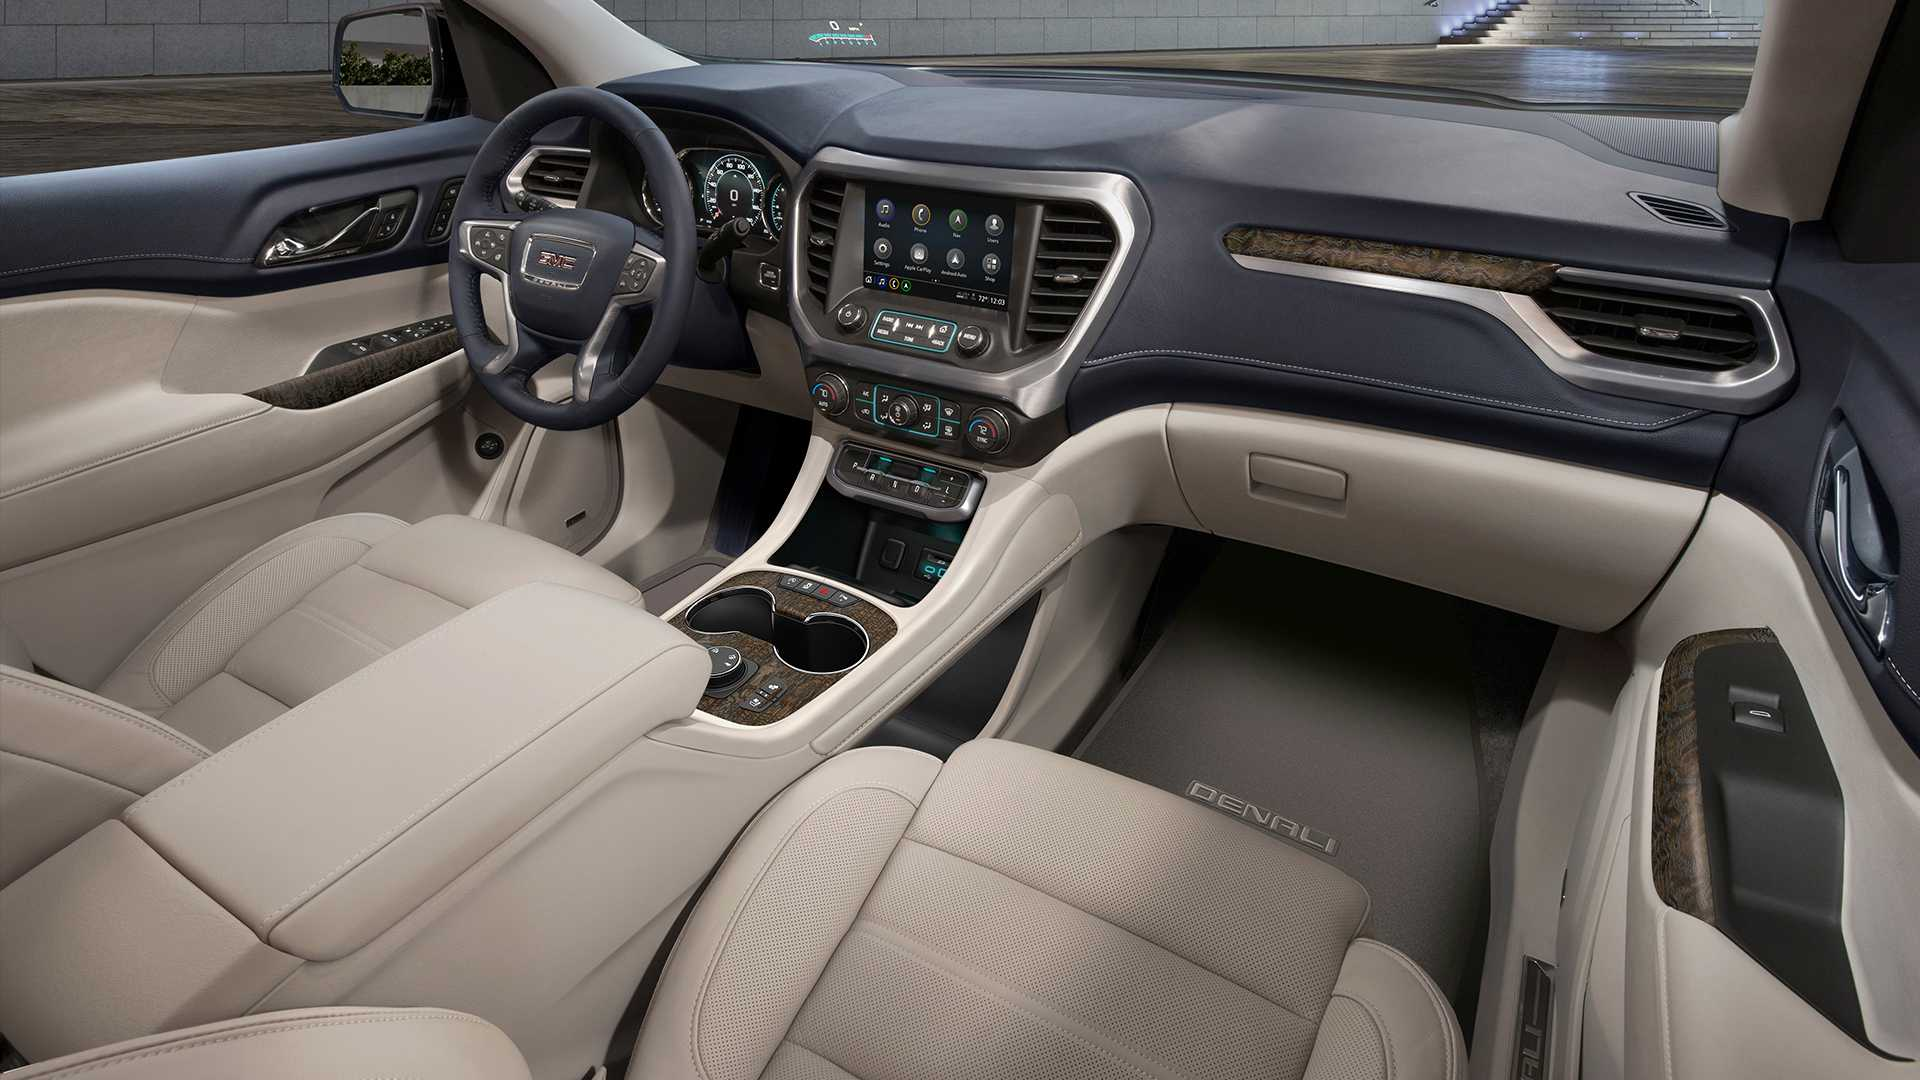 2020 GMC Acadia interior refresh